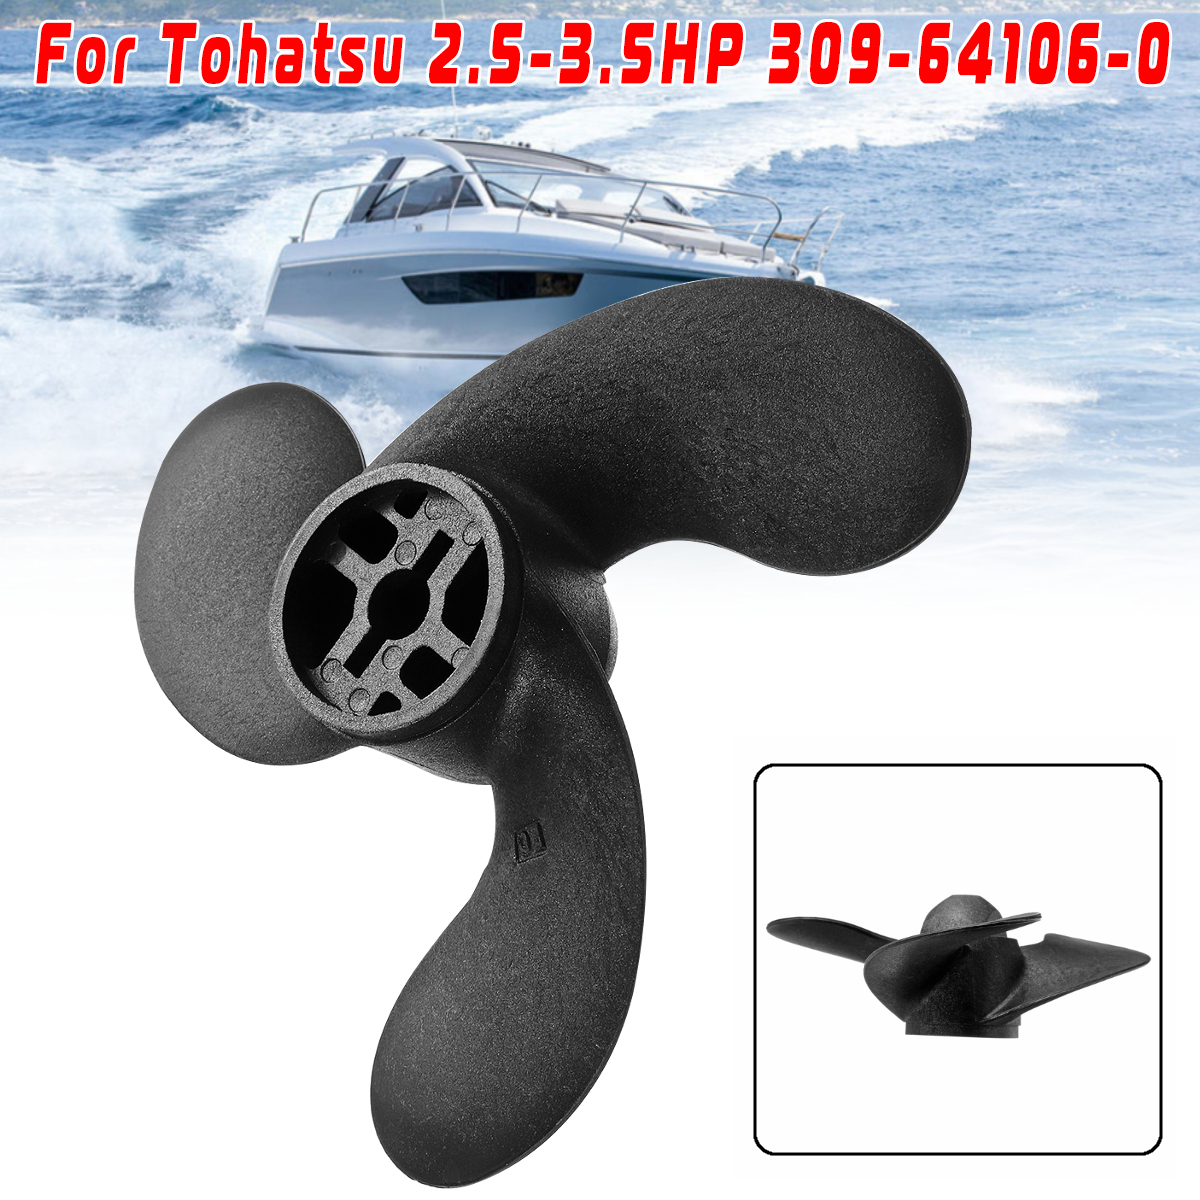 7.4 x 5.7 Boat Propeller For Nissan Tohatsu Johnson Engine 2.5-3.5HP 309-64107-0